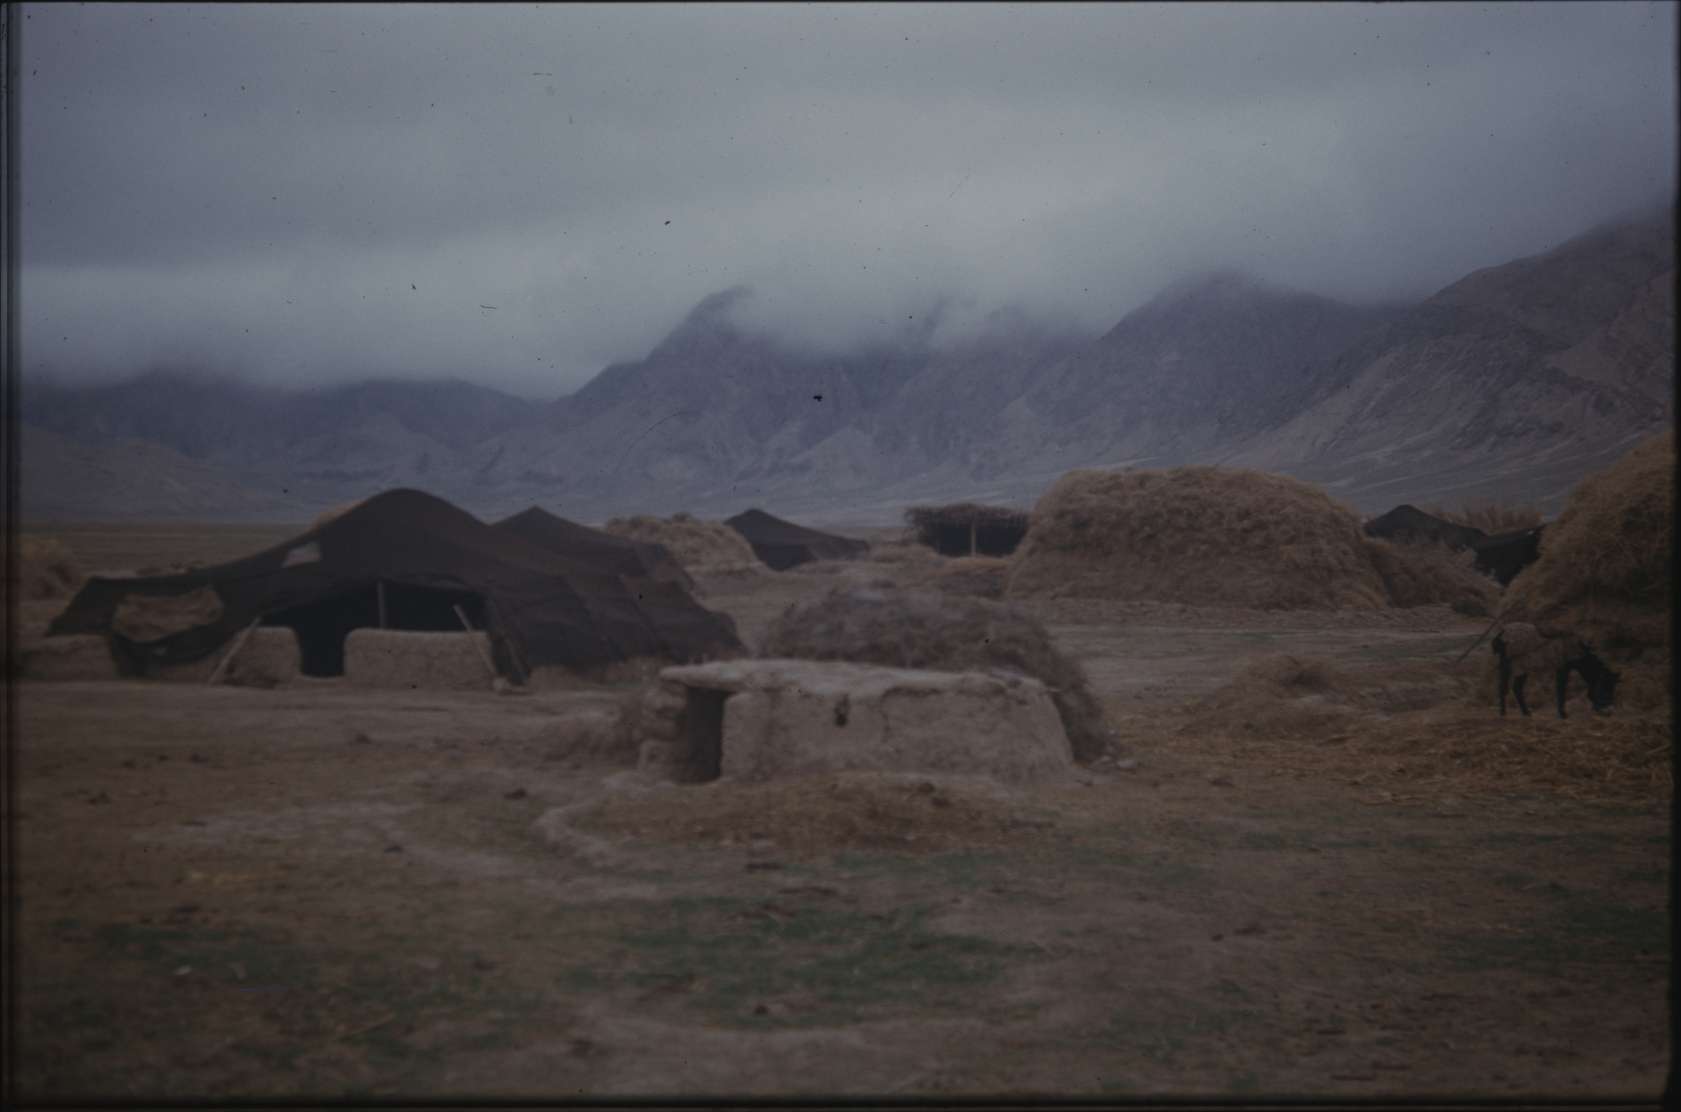 Klaus Ferdinand studied the black goat hair tents of the nomads in great detail. The Henning Haslund-Christensen Memorial Expedition, 1953-'55. Photo: the Moesgaard Museum archives